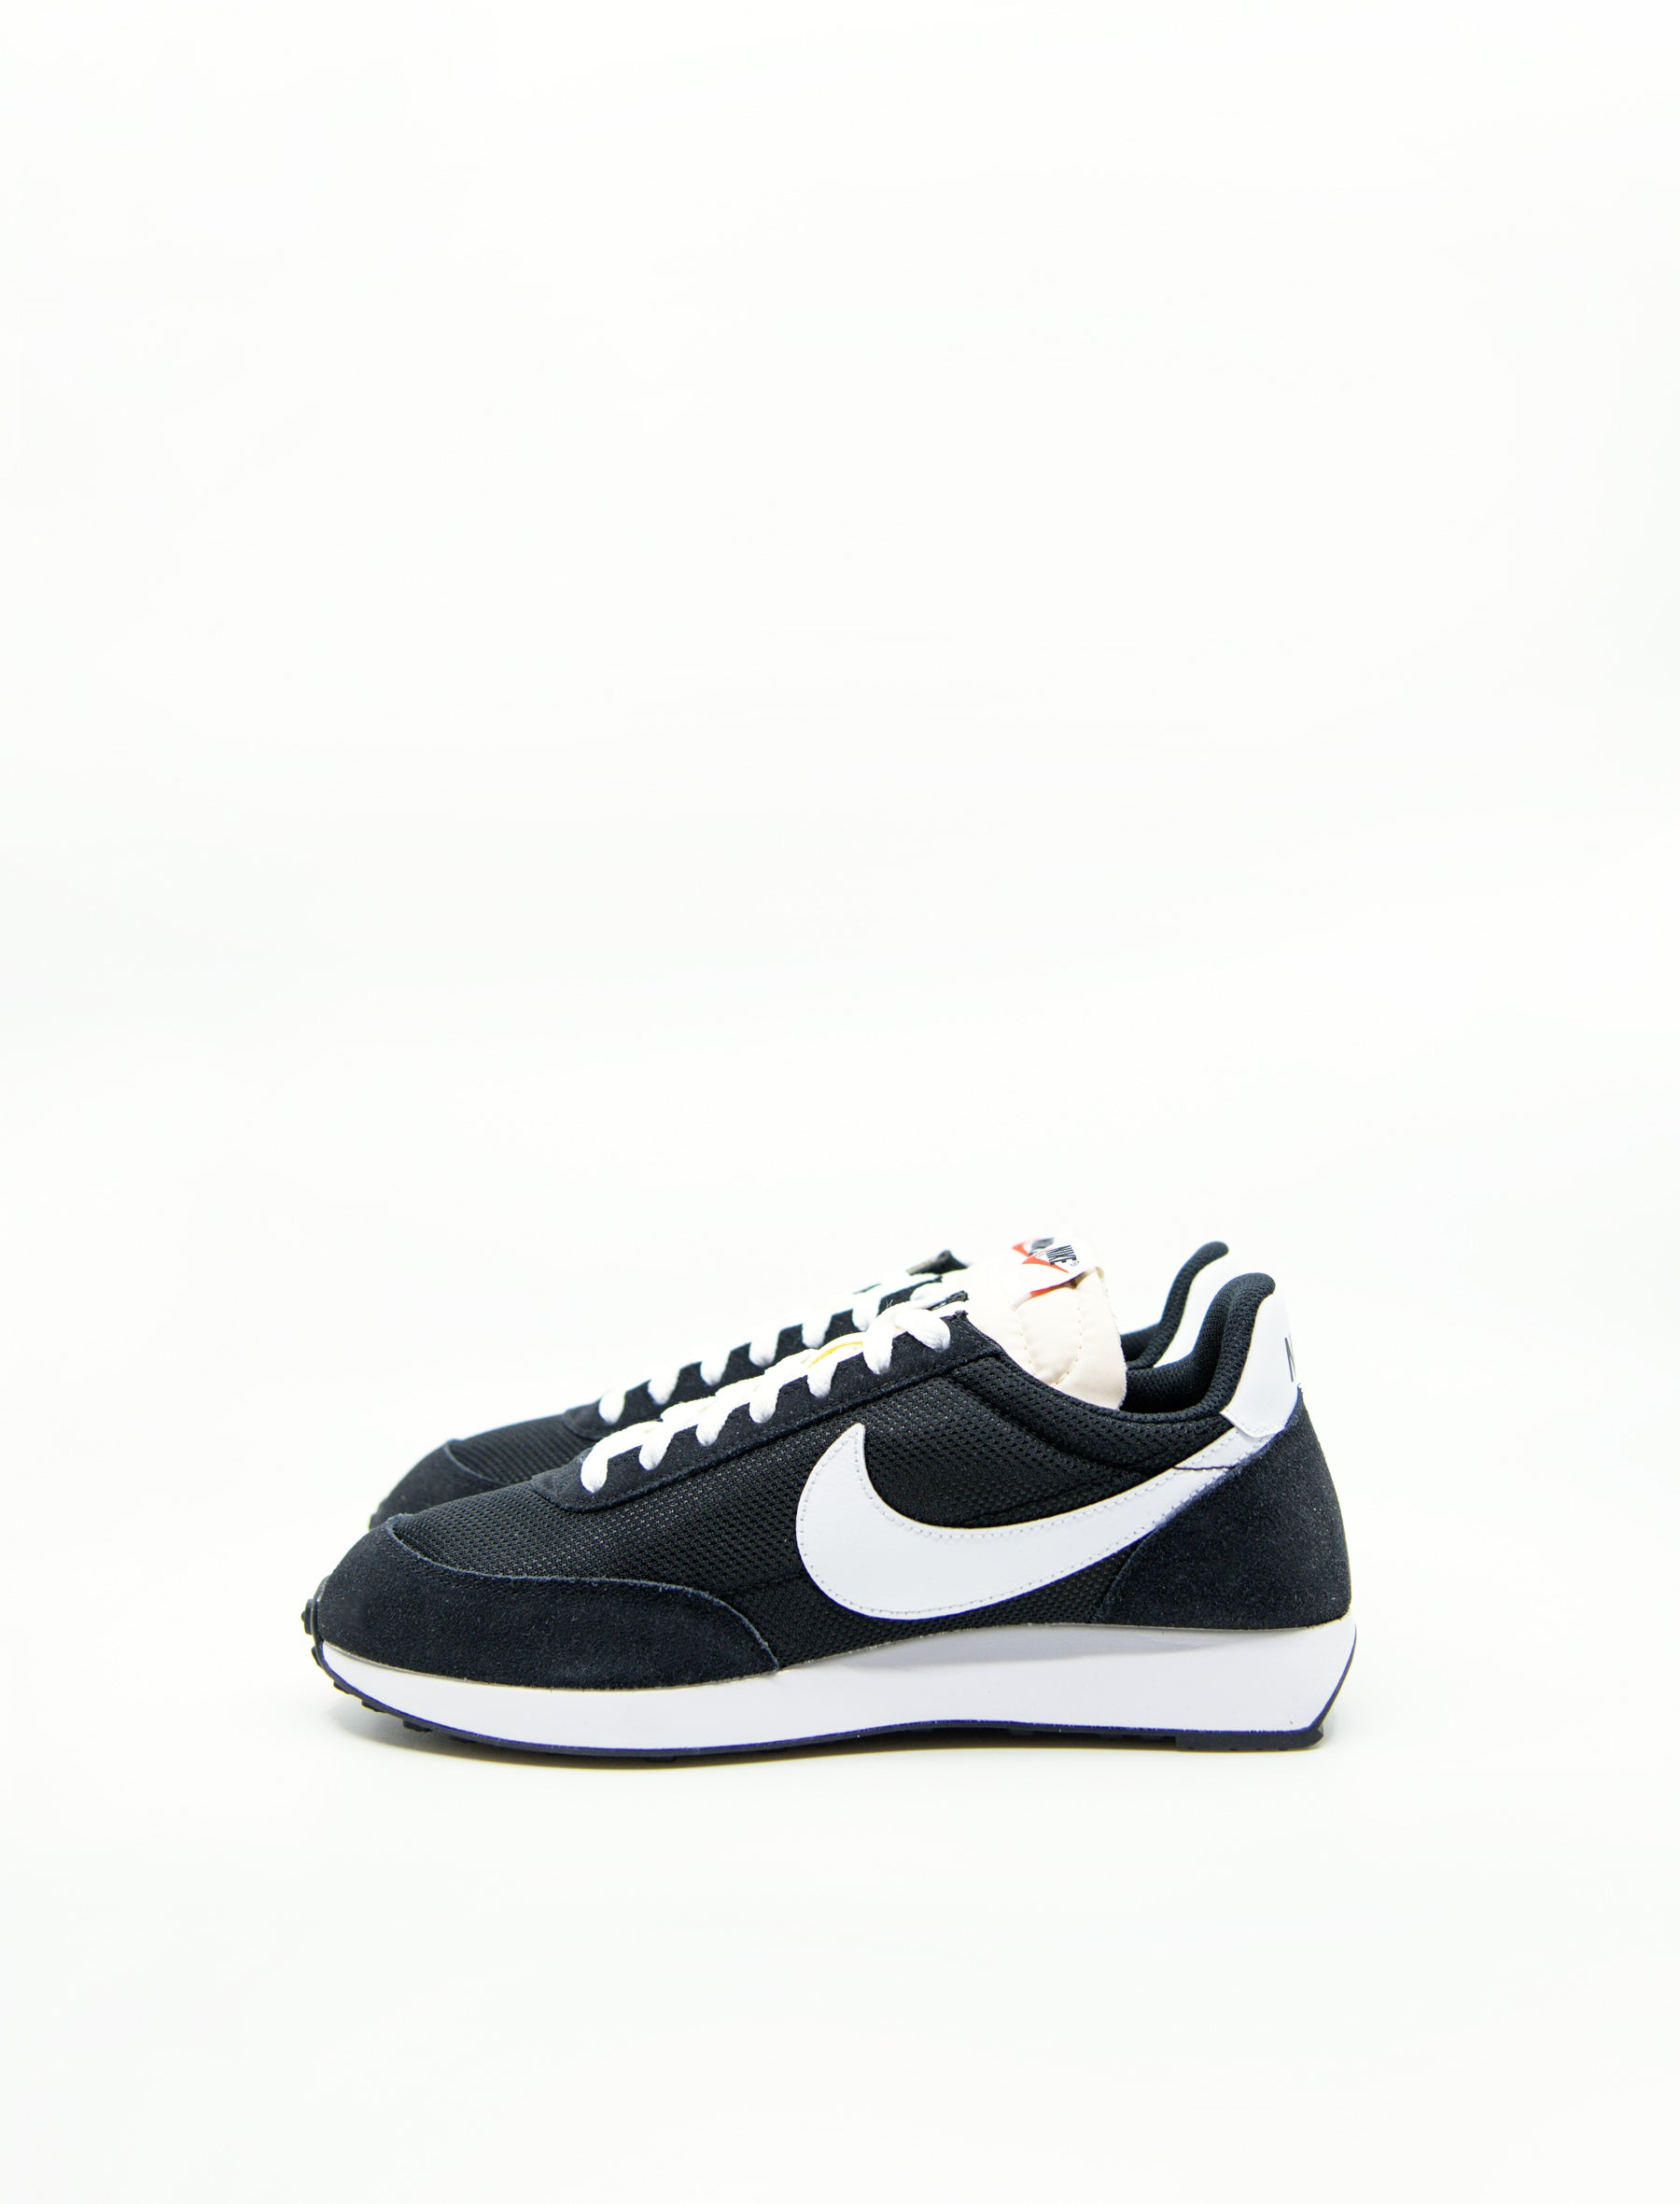 check out 47a49 db464 Nike Air Tailwind 79 Black White Orange 487754-009 - NOMAD